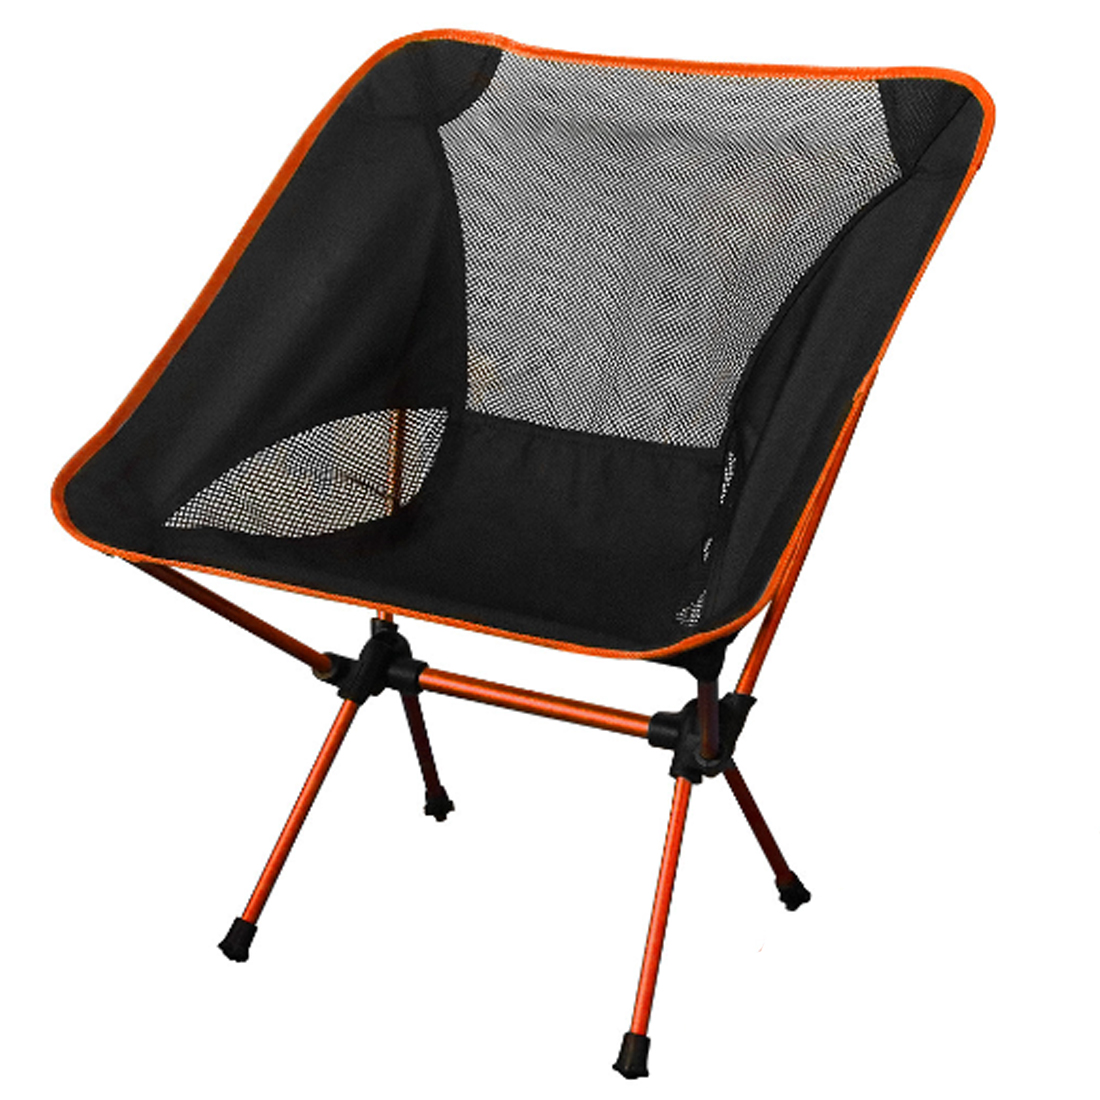 Practical Ultra Light Folding Fishing Chair Seat for Outdoor Camping Leisure Picnic Beach Chair Other pesca Tools